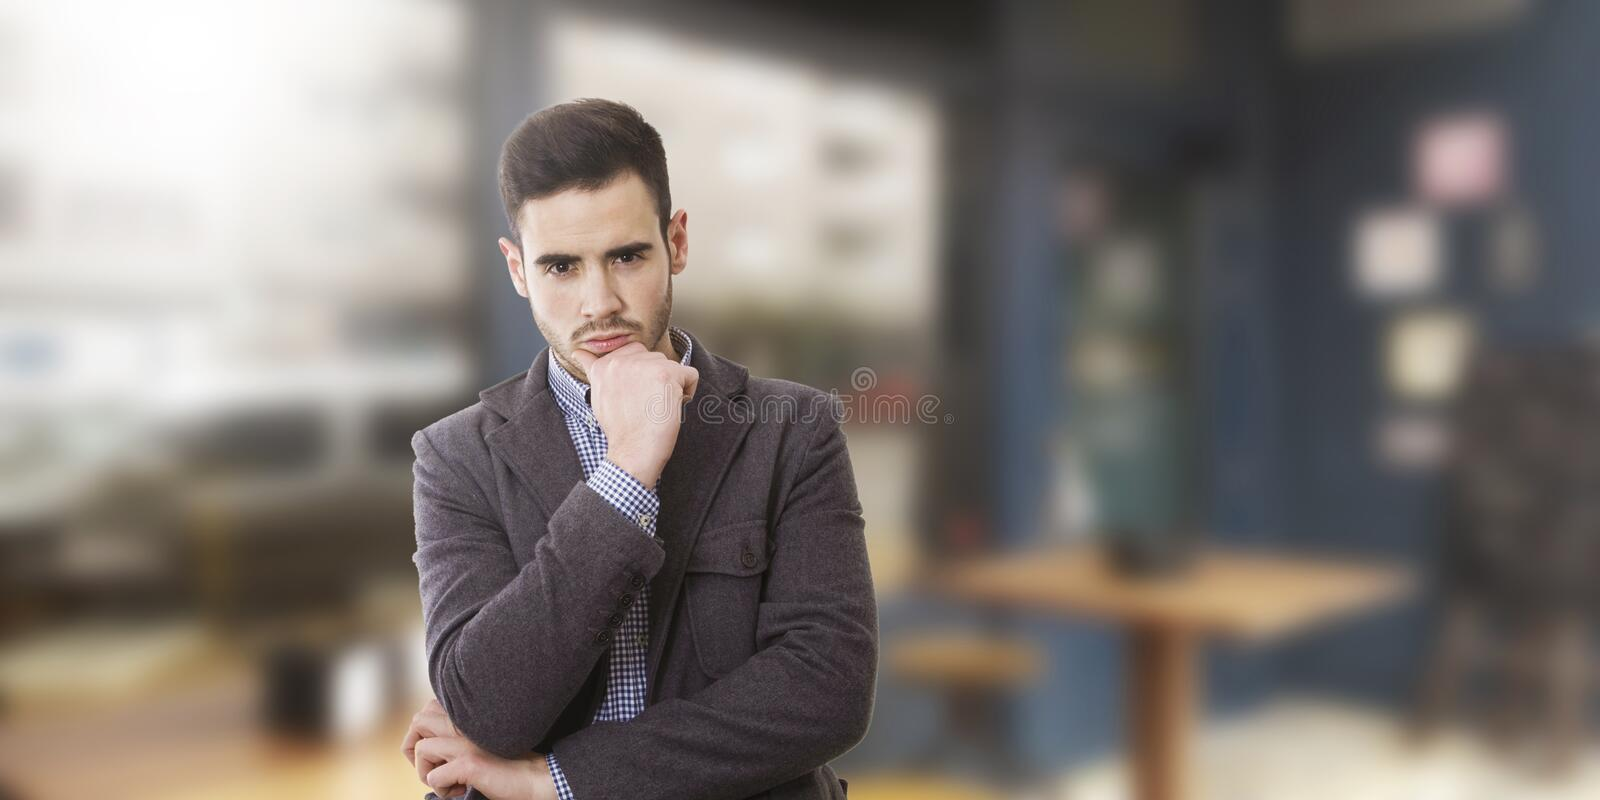 Businessman with thoughtful royalty free stock image